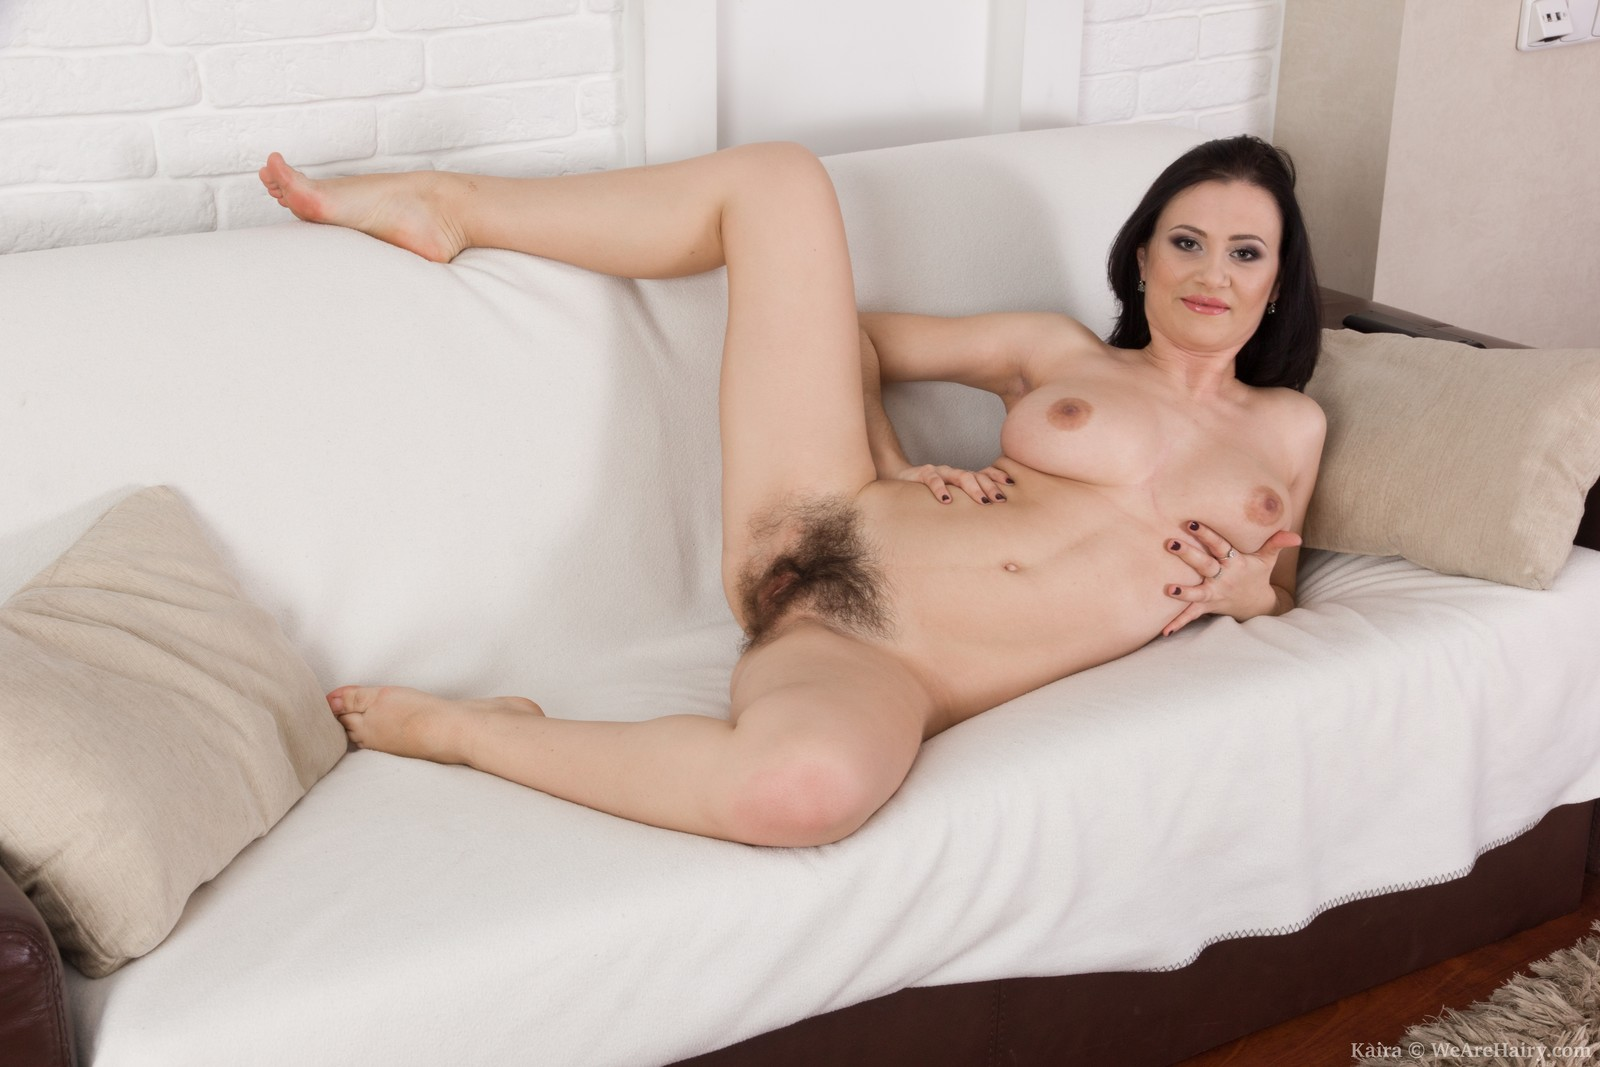 hairy stocking lady